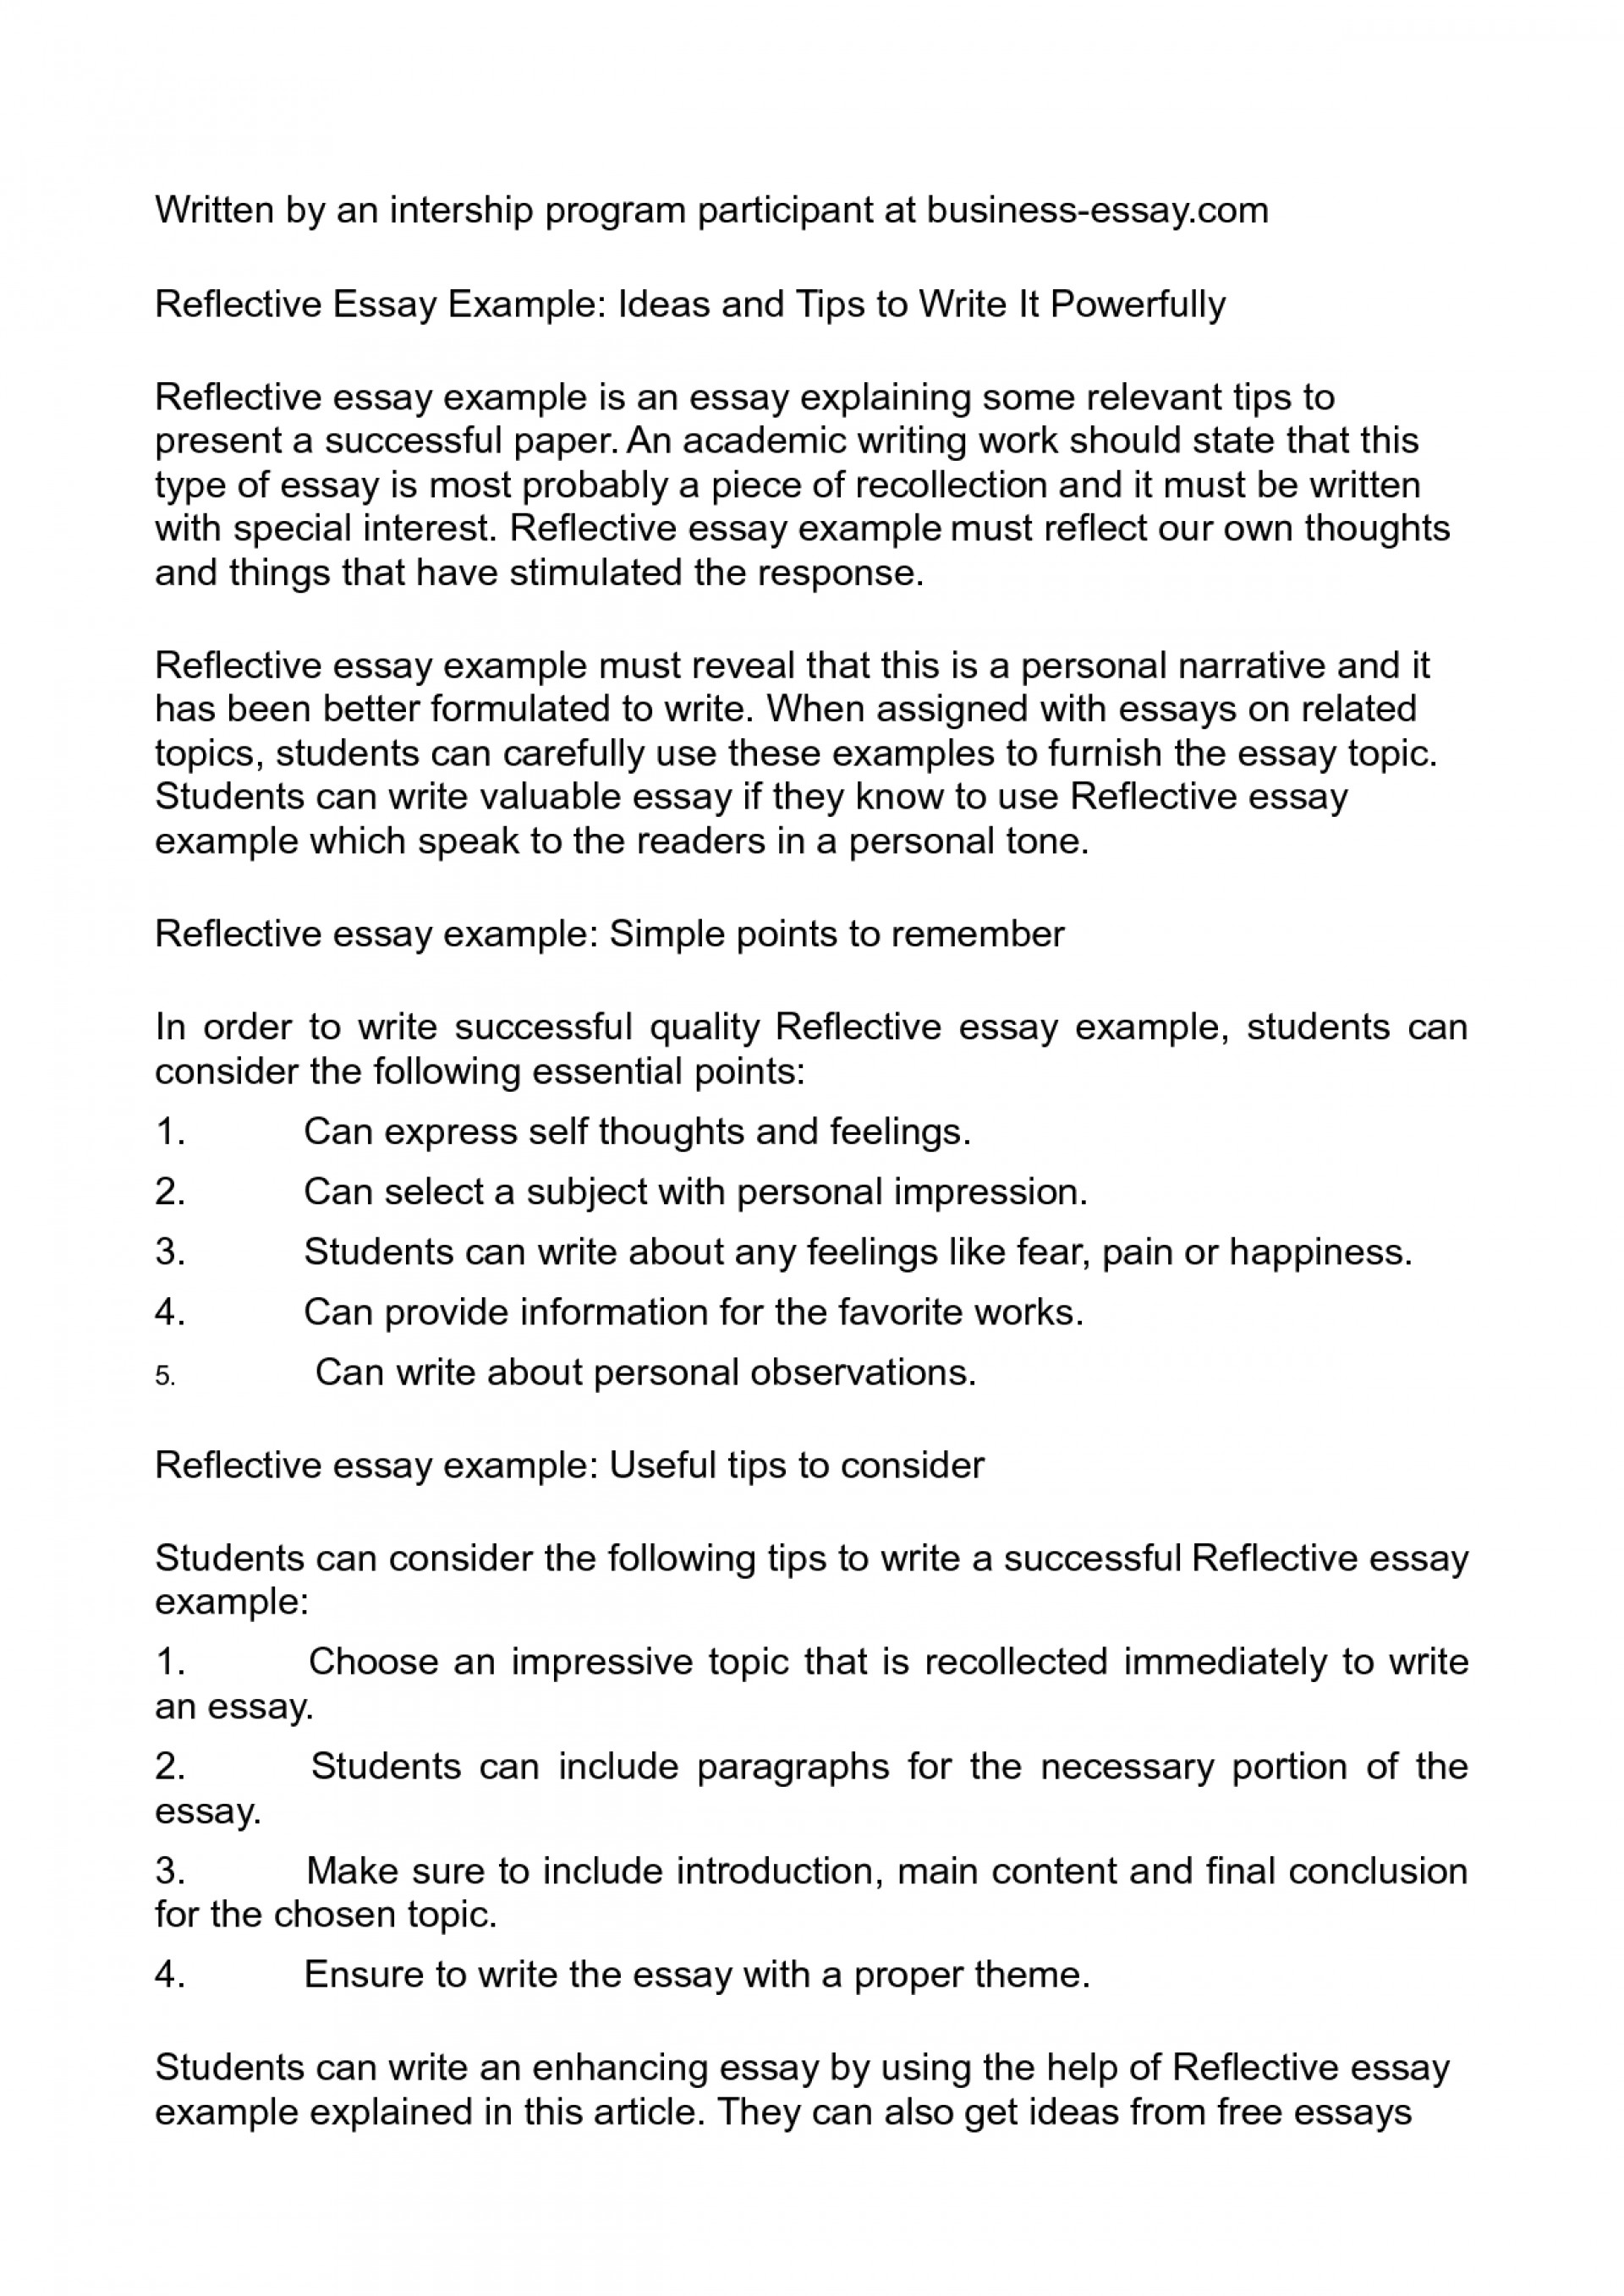 006 Reflective Essay Definition 1btuopqhuu Excellent Pdf Meaning In Telugu Personal Reflection 1920